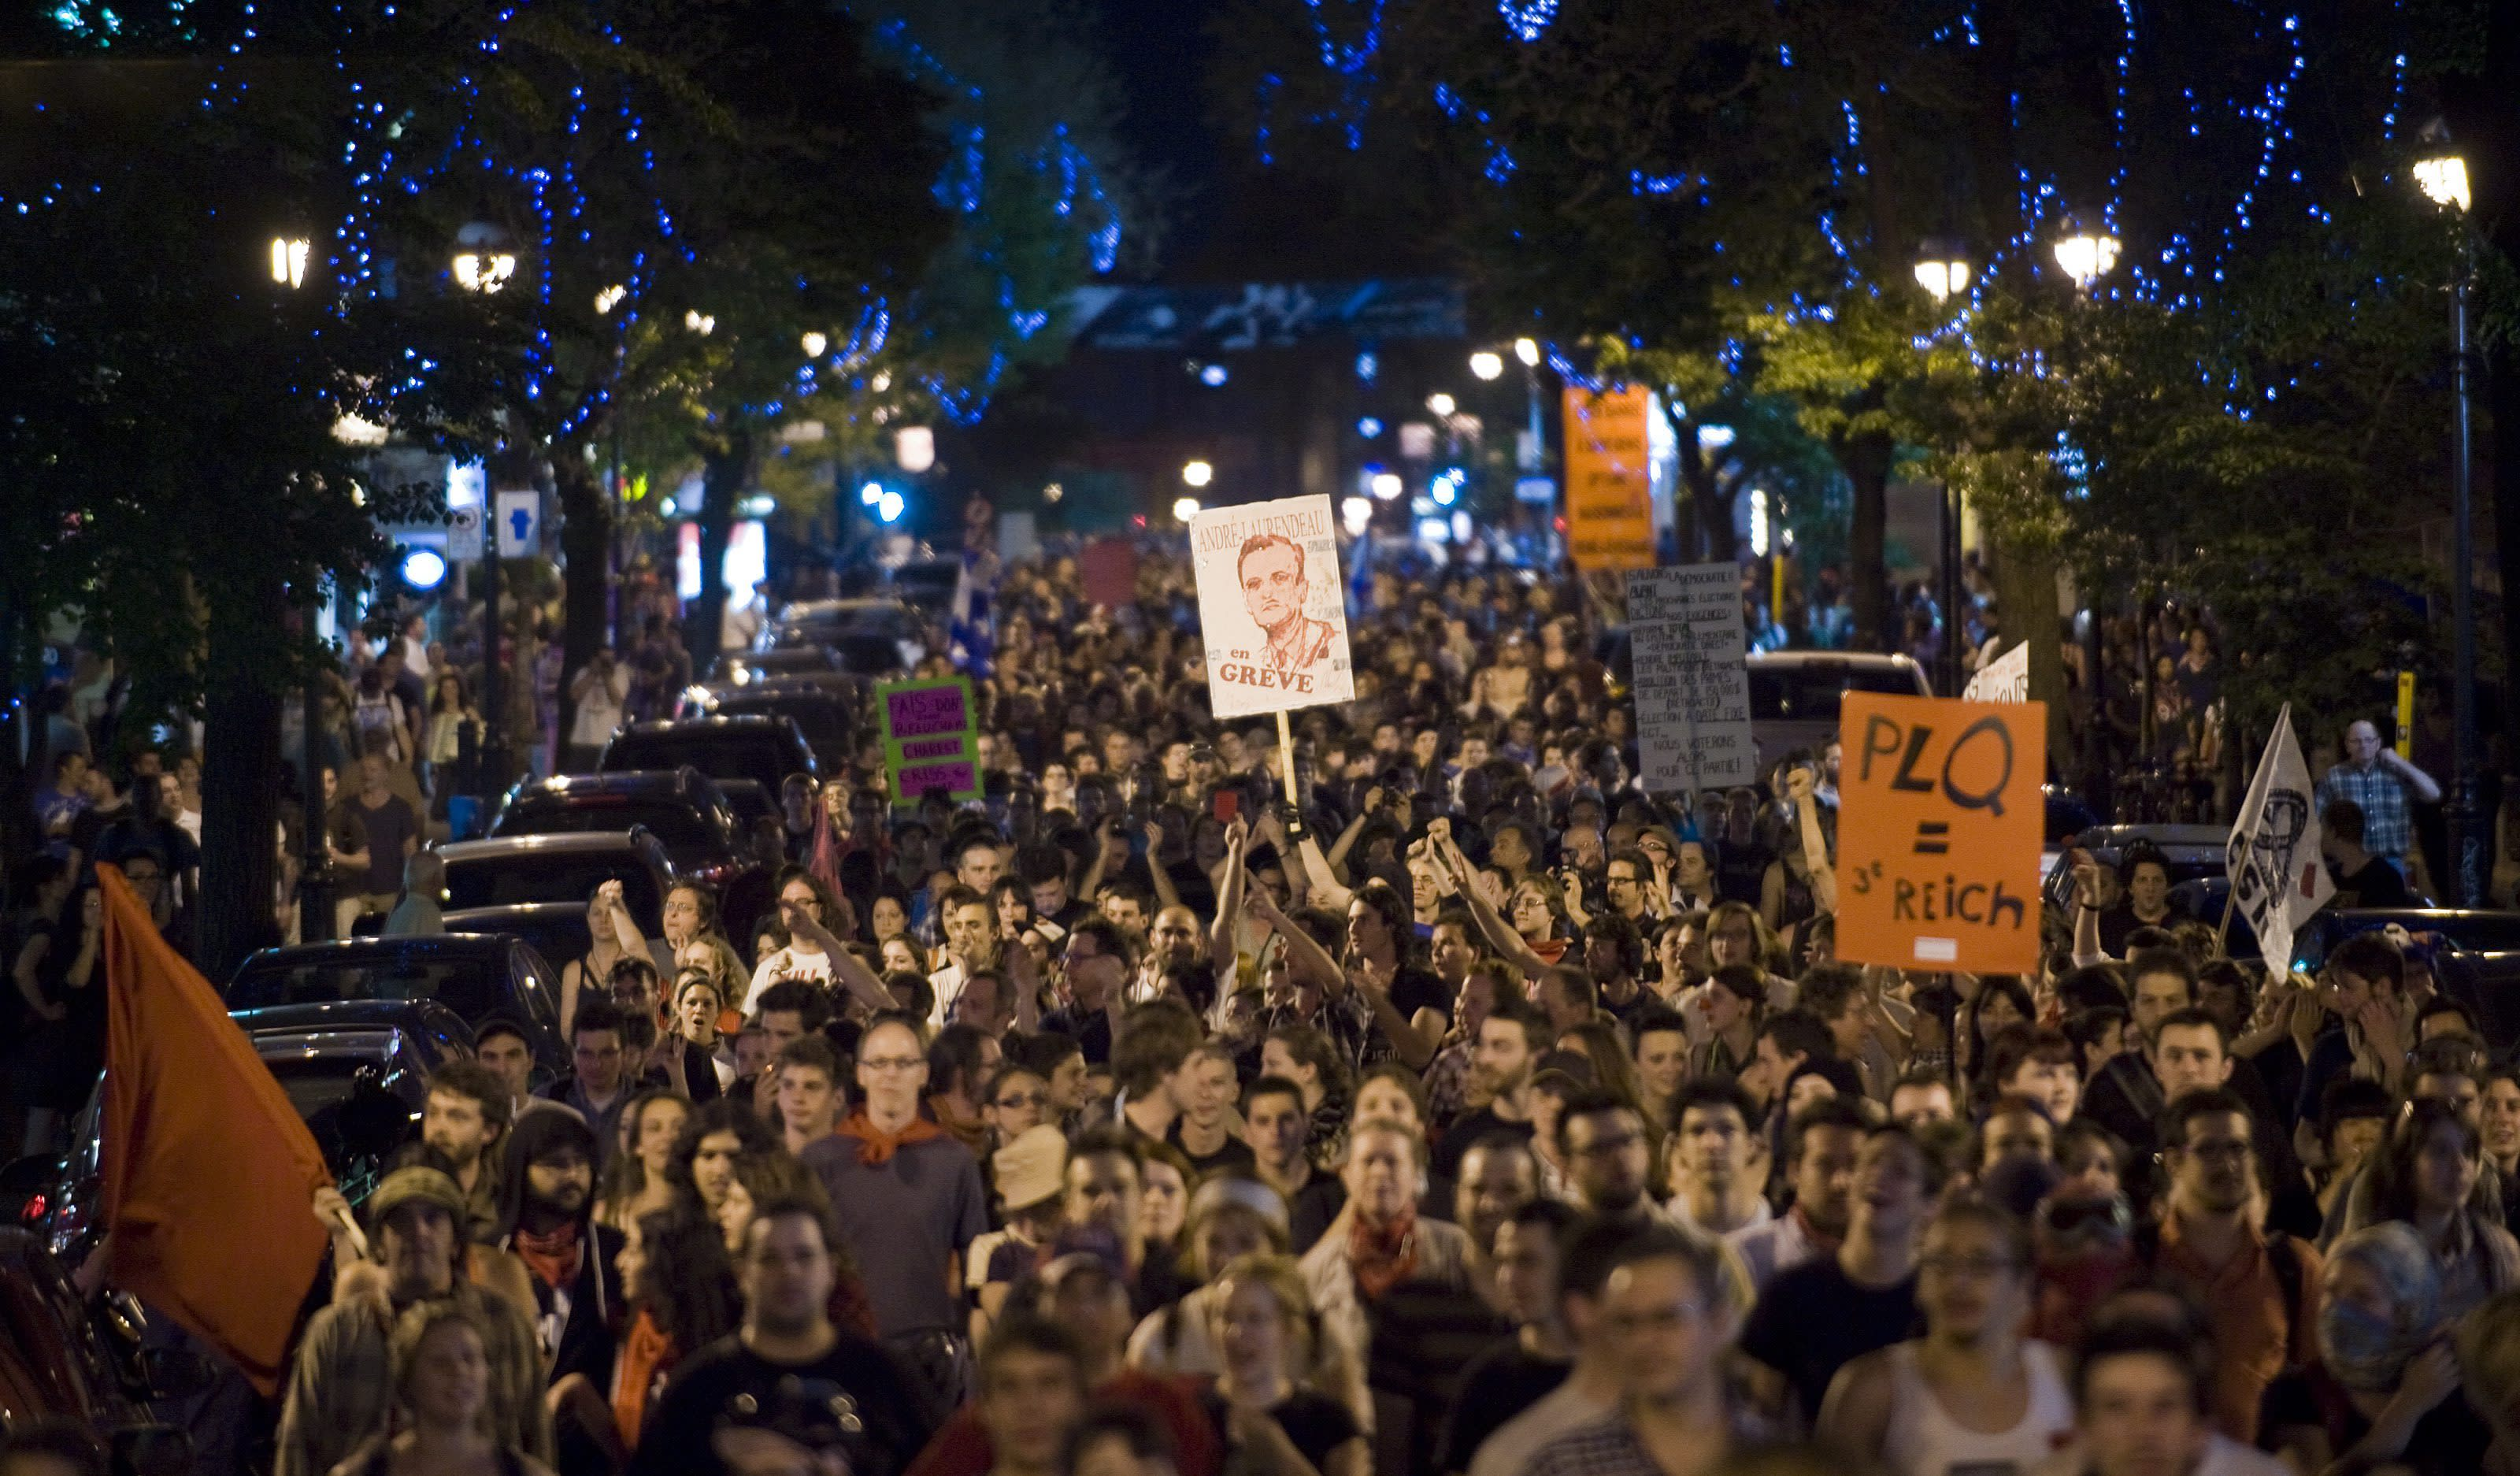 Quebec students send a message against austerity   The Star